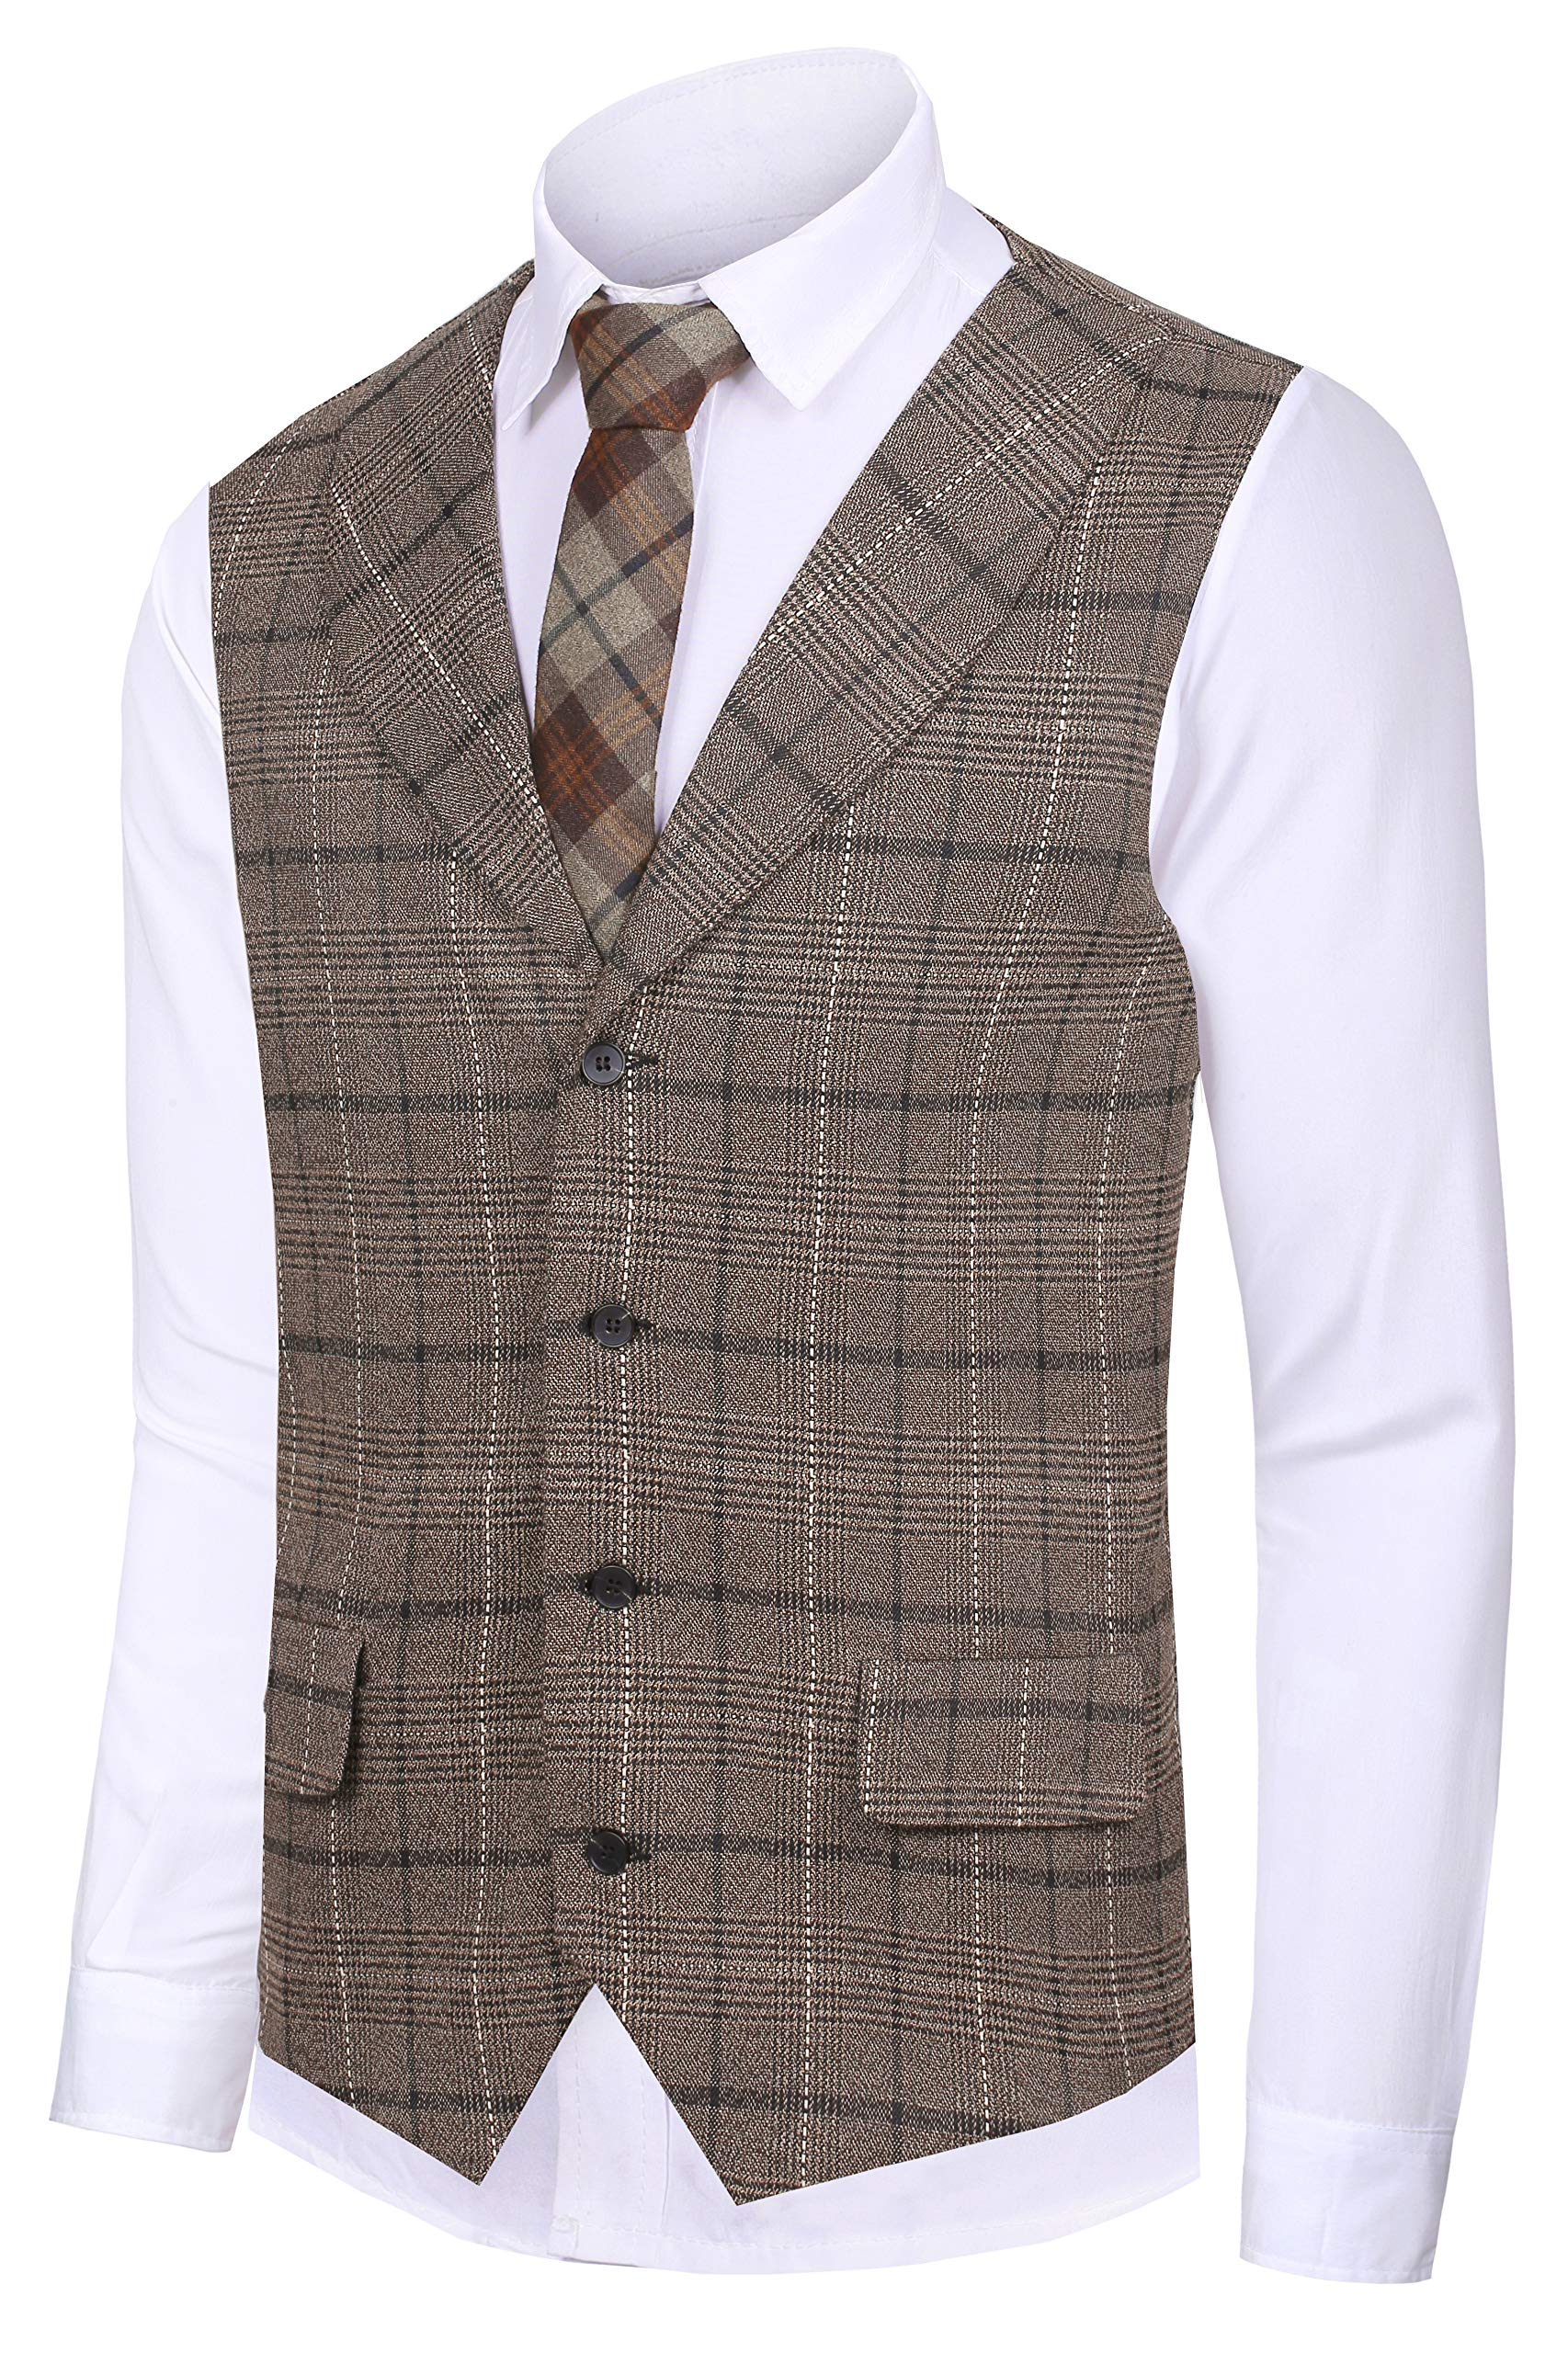 Hanayome Men Waistcoat Collar Sleeveless Slim Fit Jacket Business Suit Vests VS30,Brown 1,L(US Tag Chest 44'' Waist 38'') by Hanayome